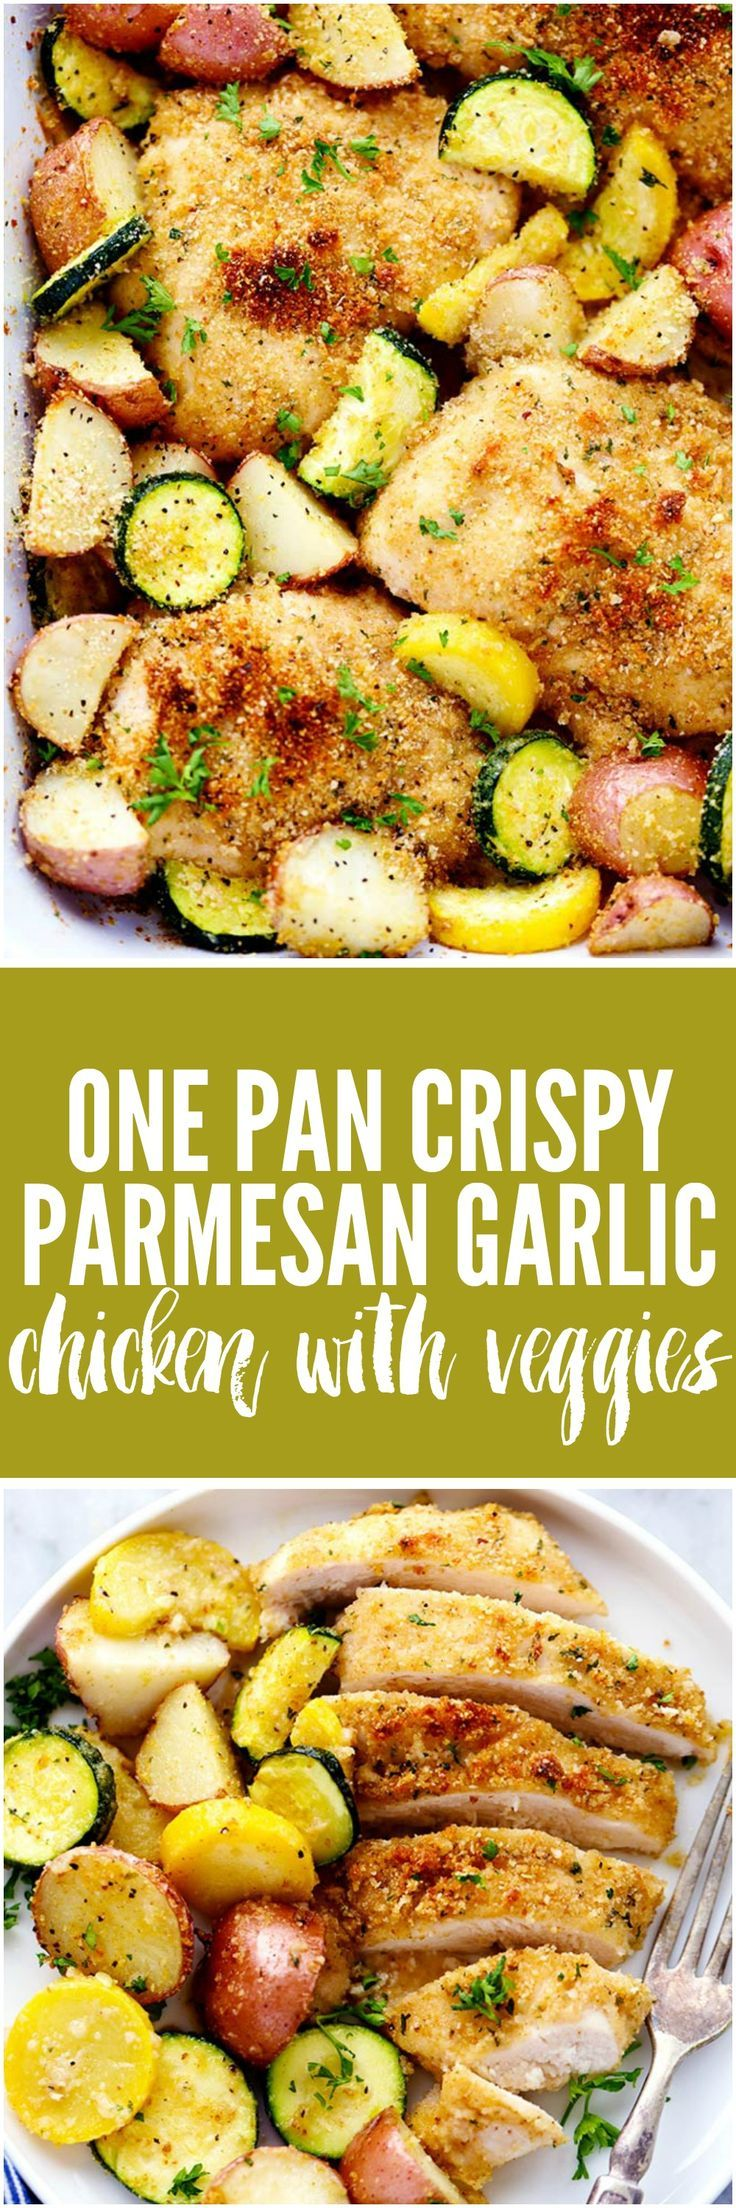 One Pan Crispy Parmesan Garlic Chicken with Vegetables will be one of the best one pan meals you ever make. The tender and juicy baked chicken have the best crispy parmesan garlic coating and the veggies are full of amazing flavor!